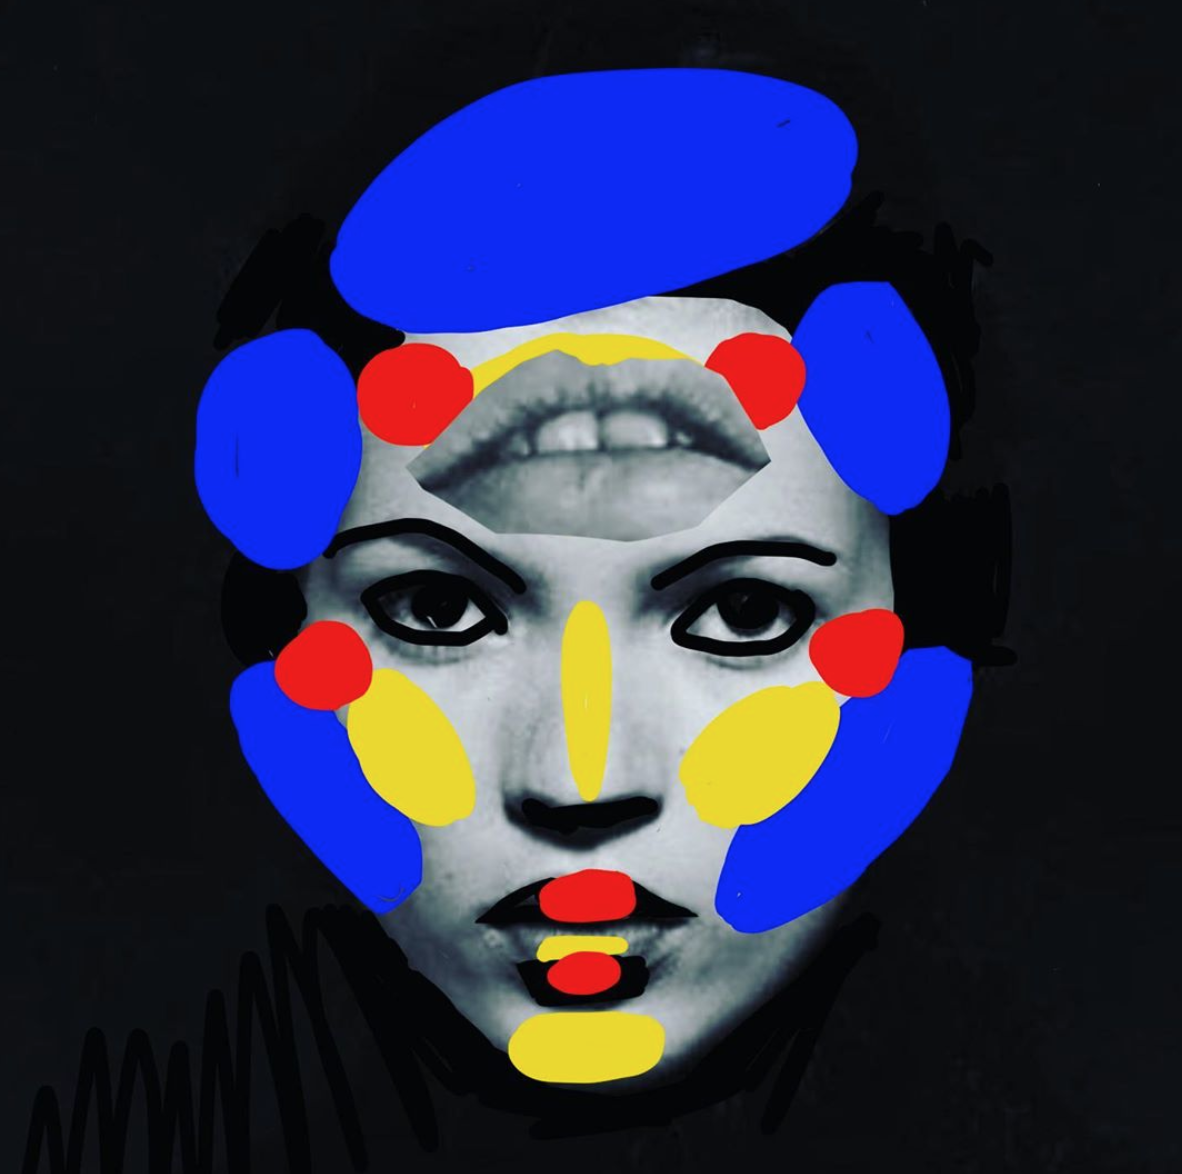 Music Pop Culture Colossal Photography Face Illustration Painting Editorial Magazine Design Carla Rozman @carlasimone Model Kate Moss Lips Album Cover .png